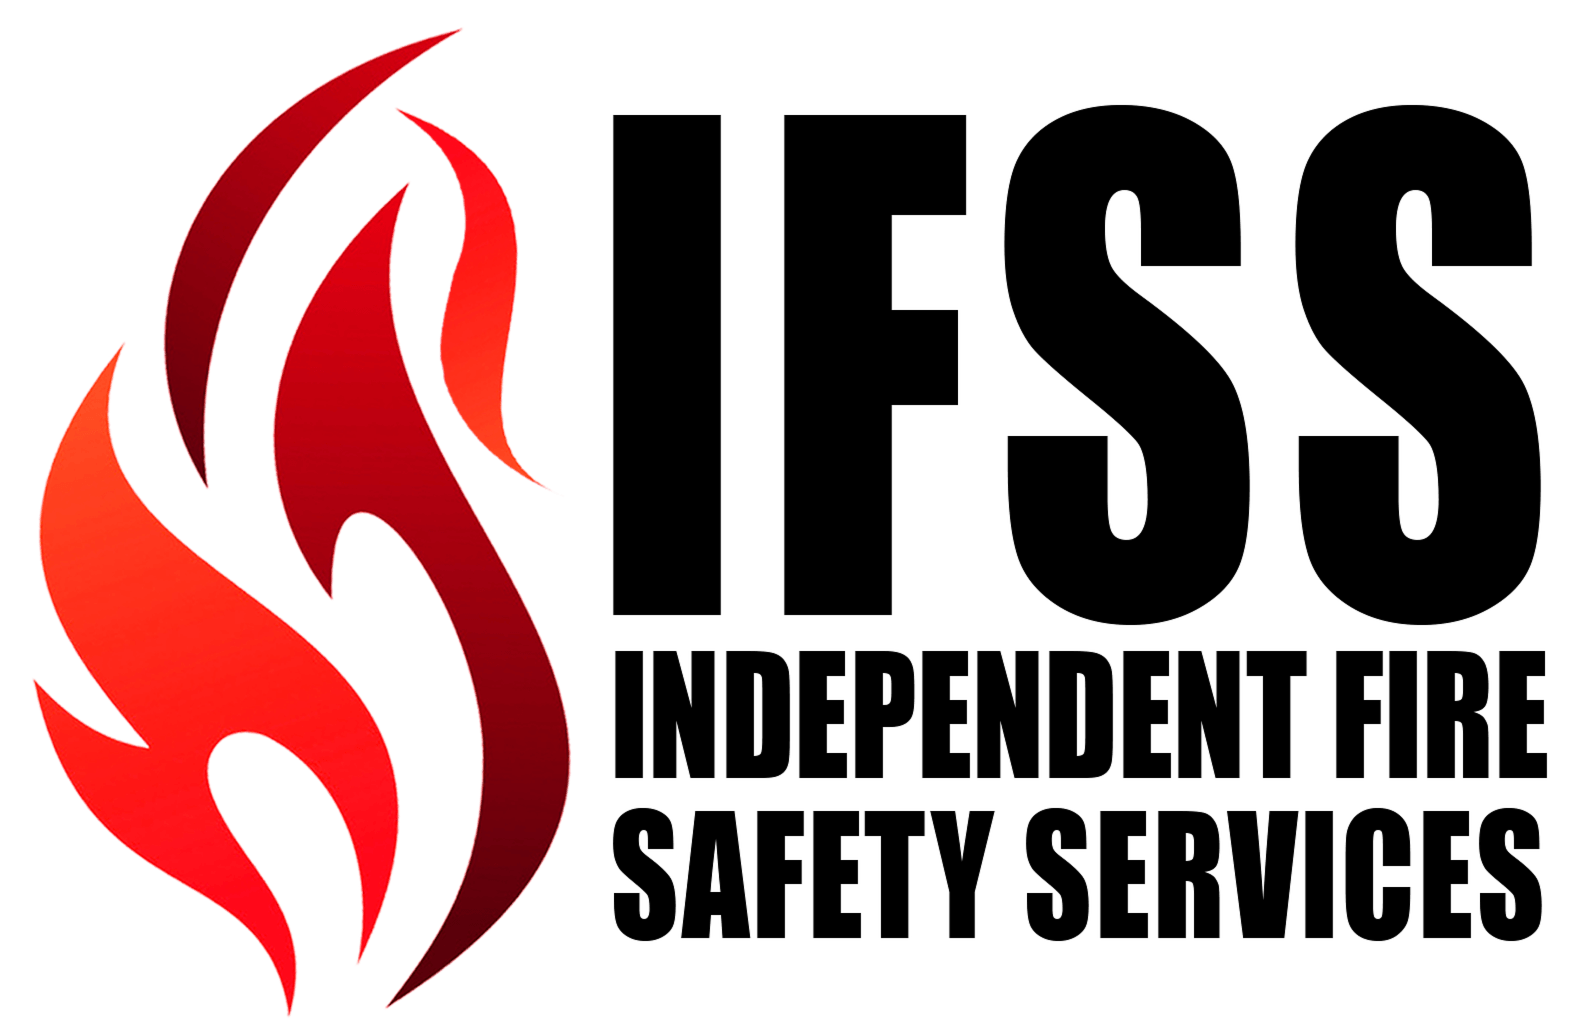 Independent Fire Safety Services Limited